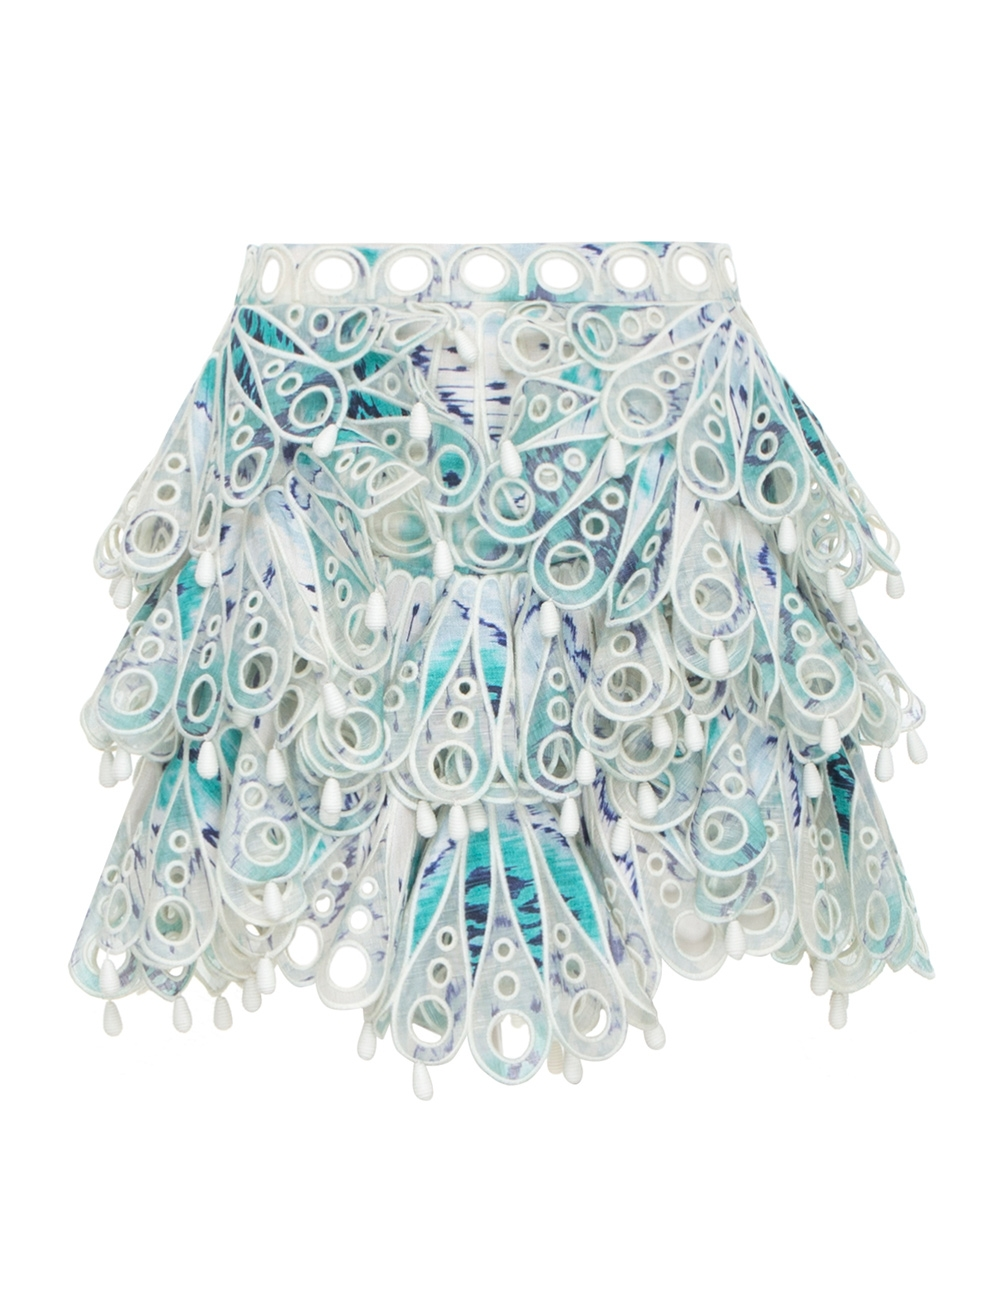 Glassy Bubble Flip Skirt